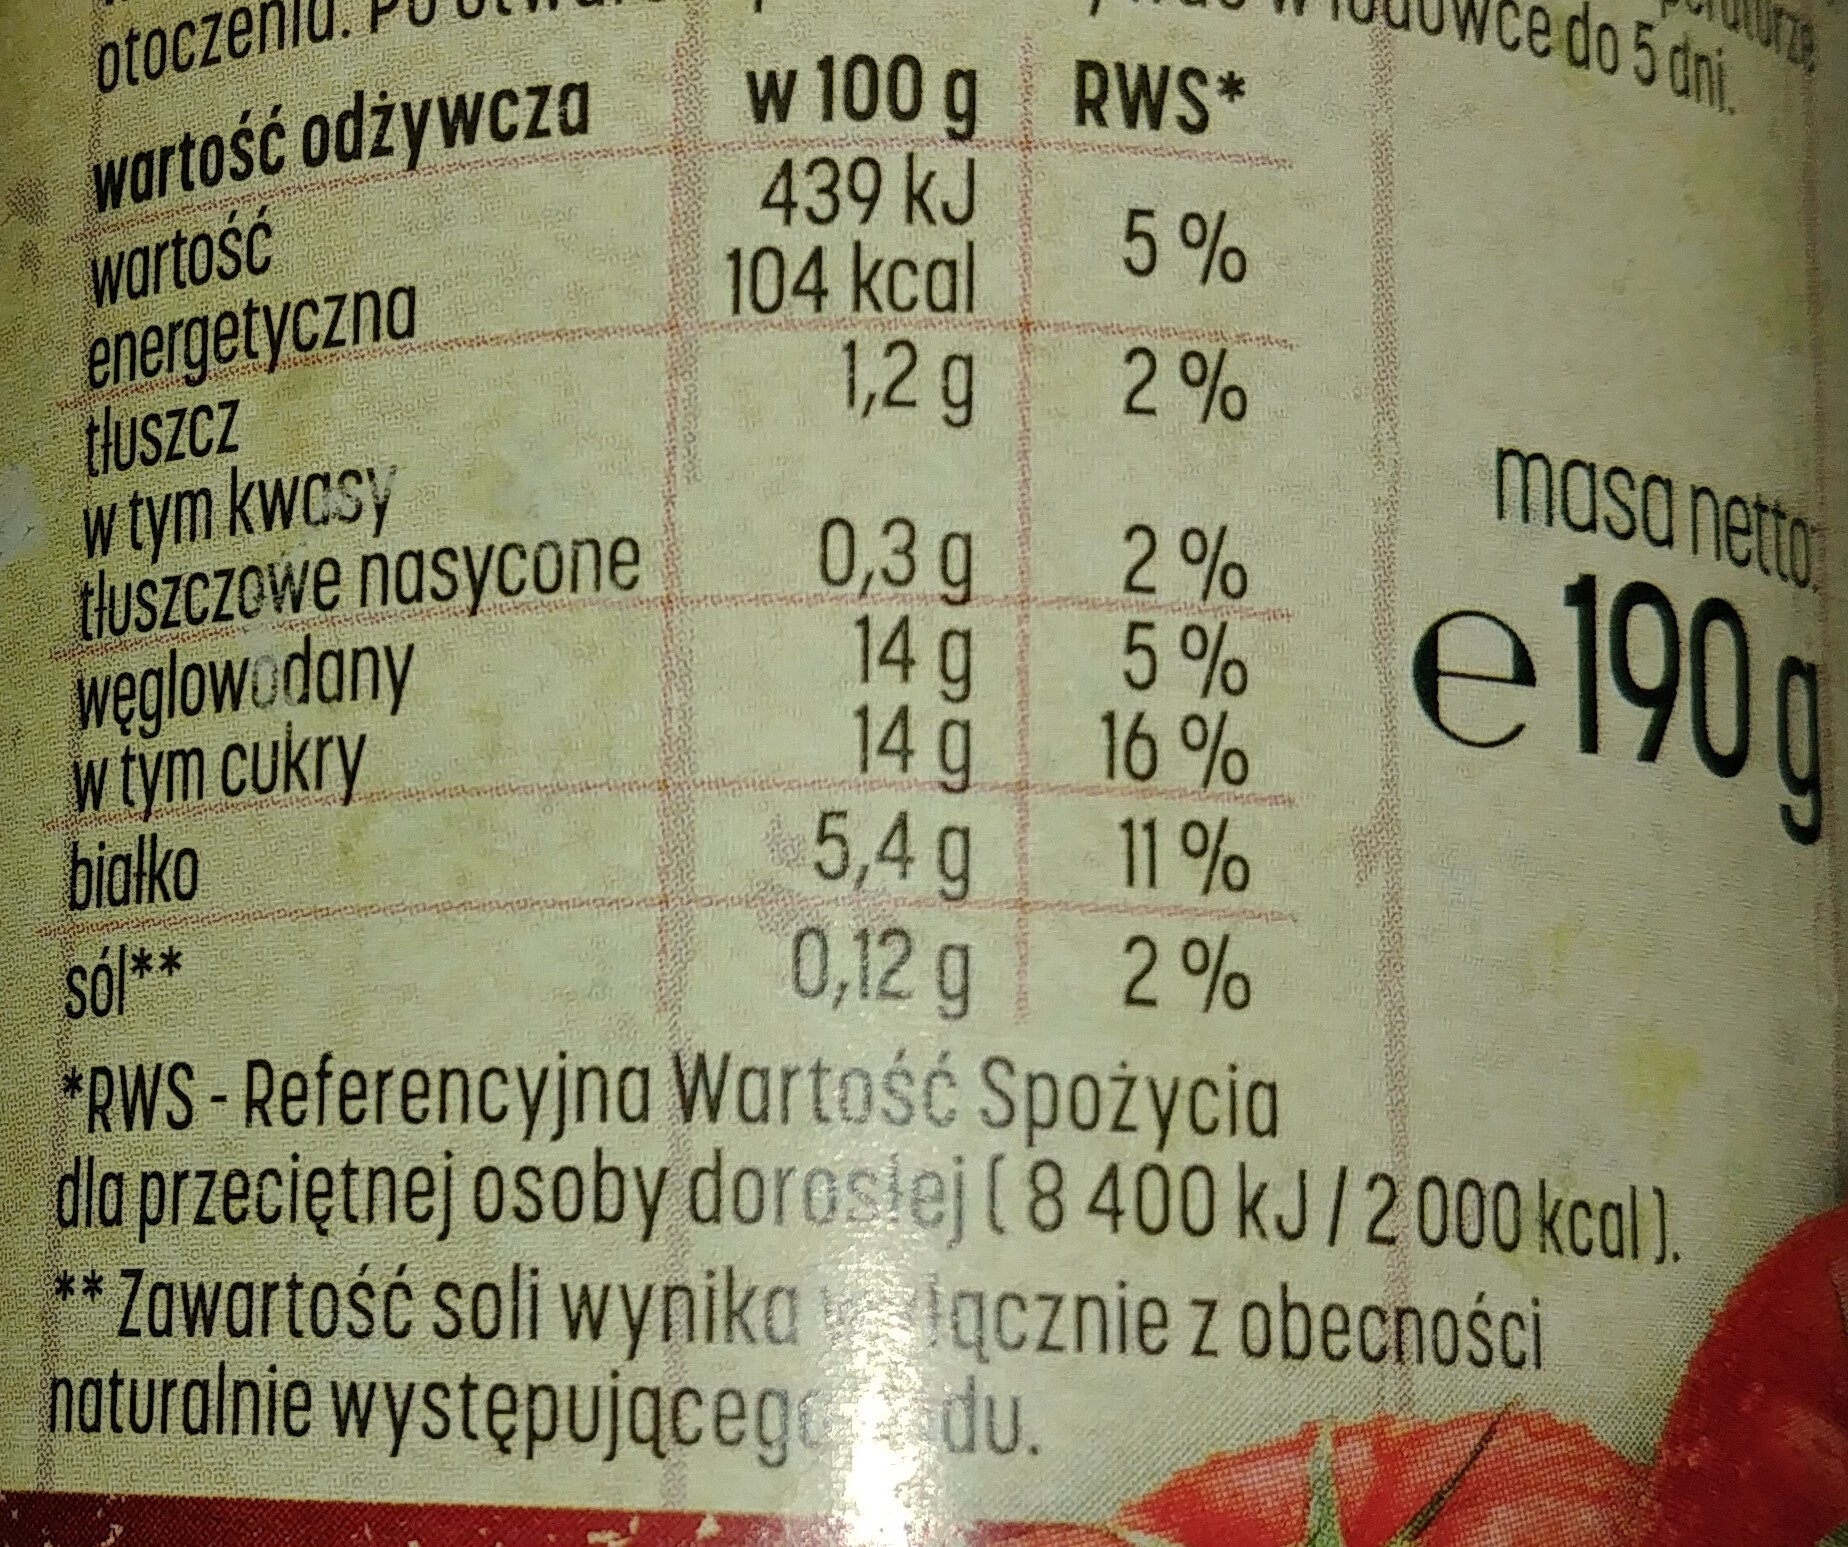 Koncentrat pomidorowy 30% - Nutrition facts - pl